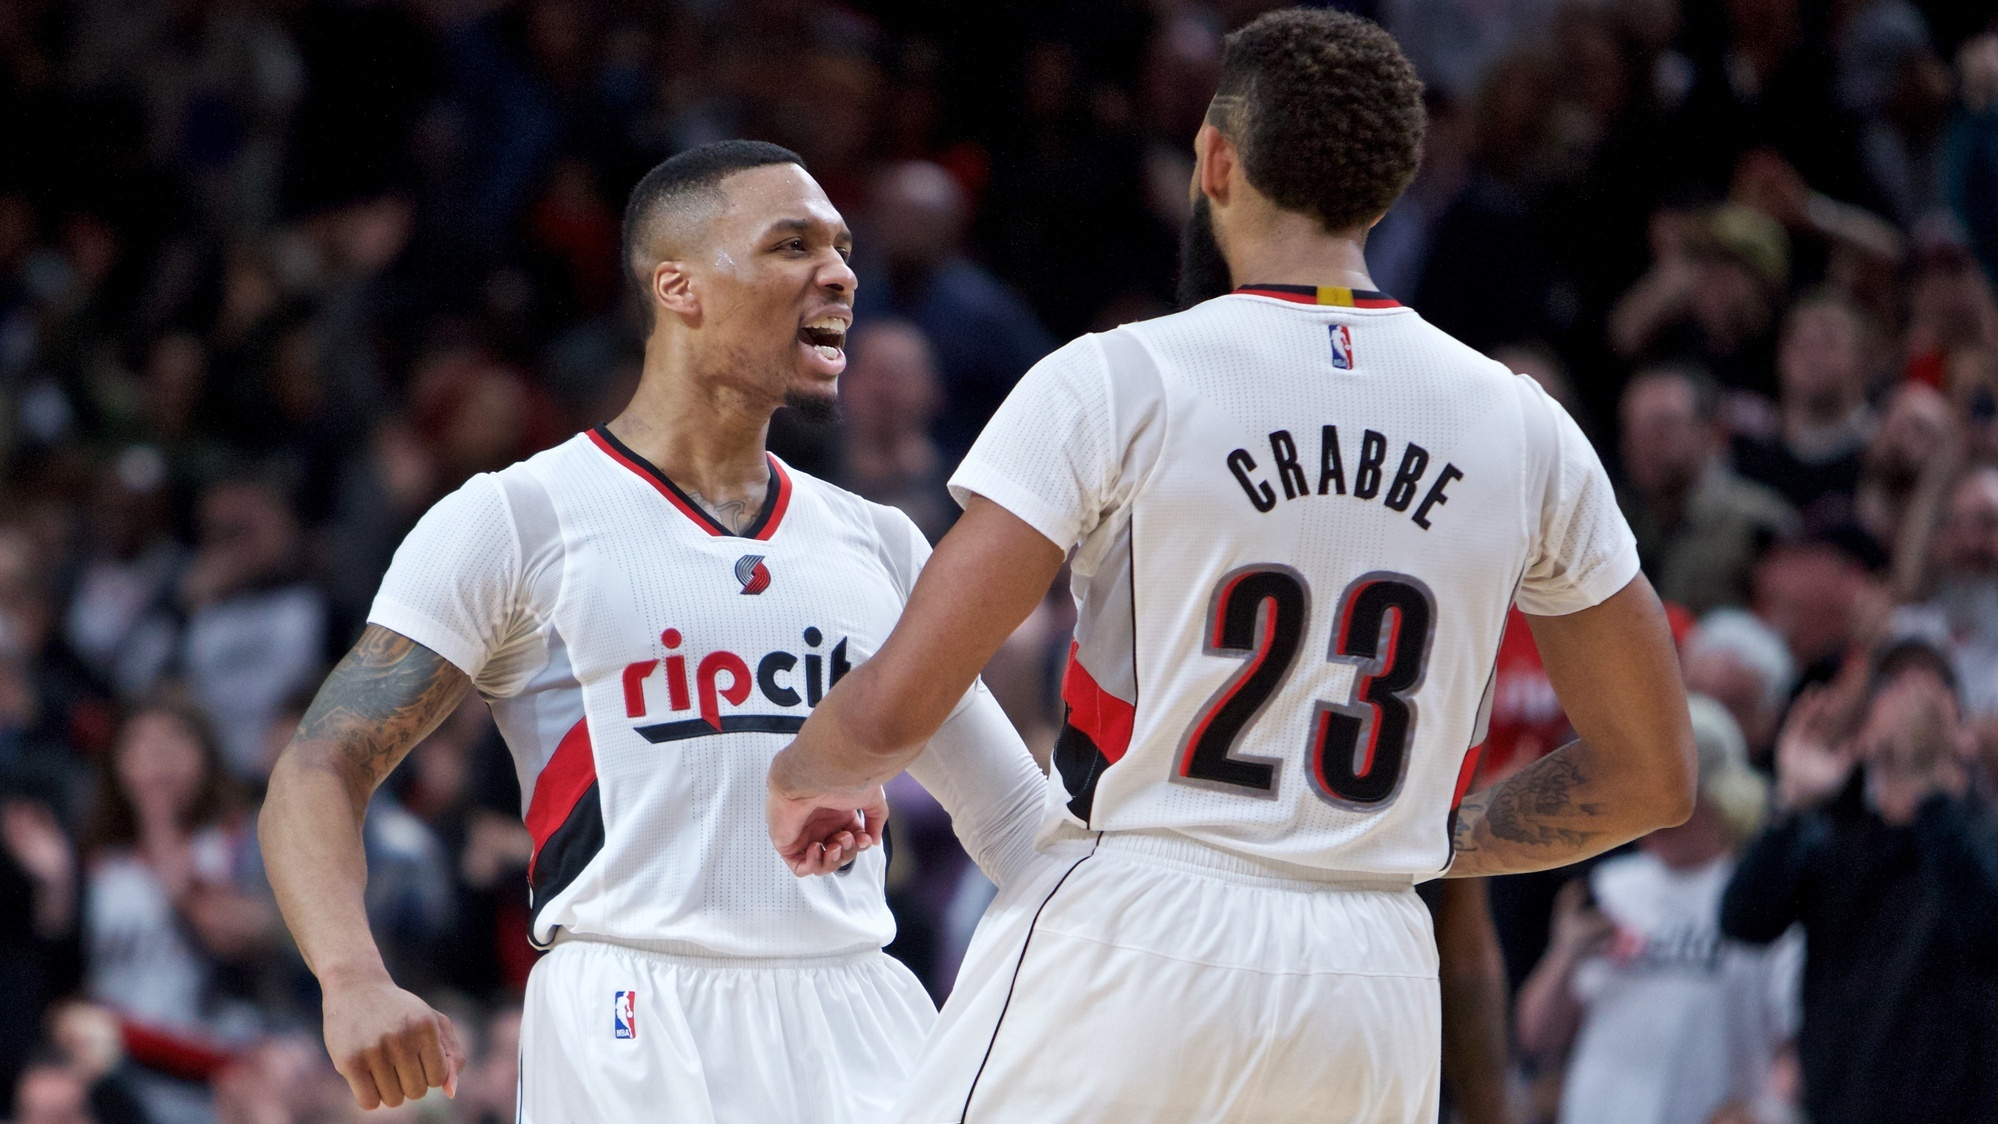 Lillard scores franchise record 59 points in Blazers win against